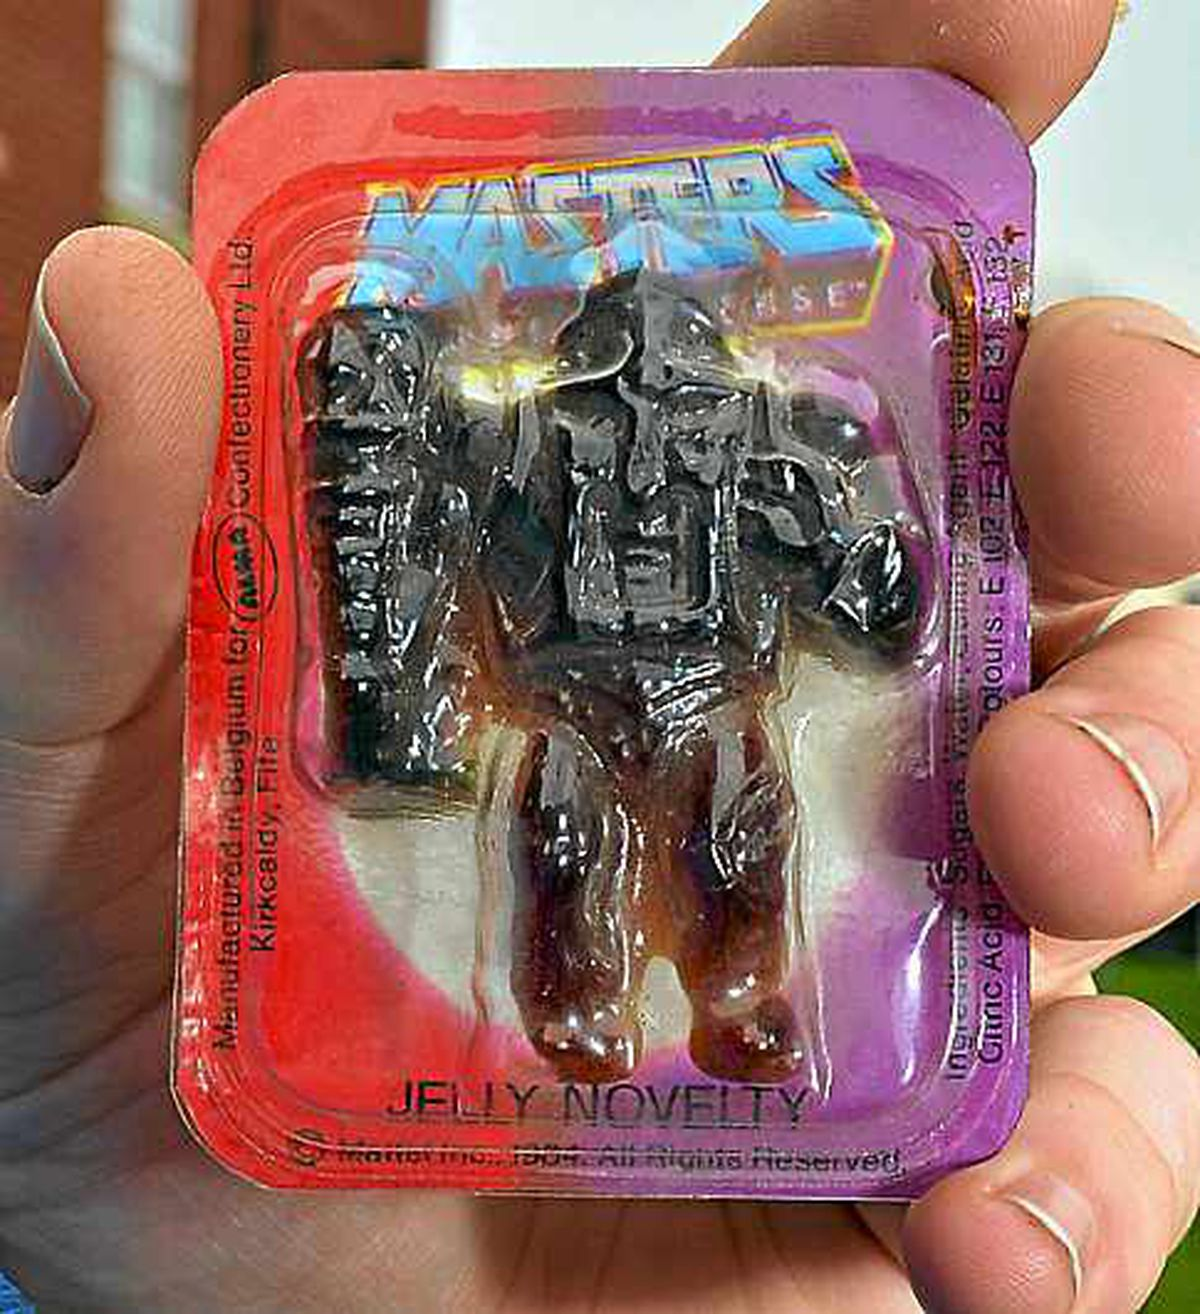 The 30-year-old He-man jelly sweet